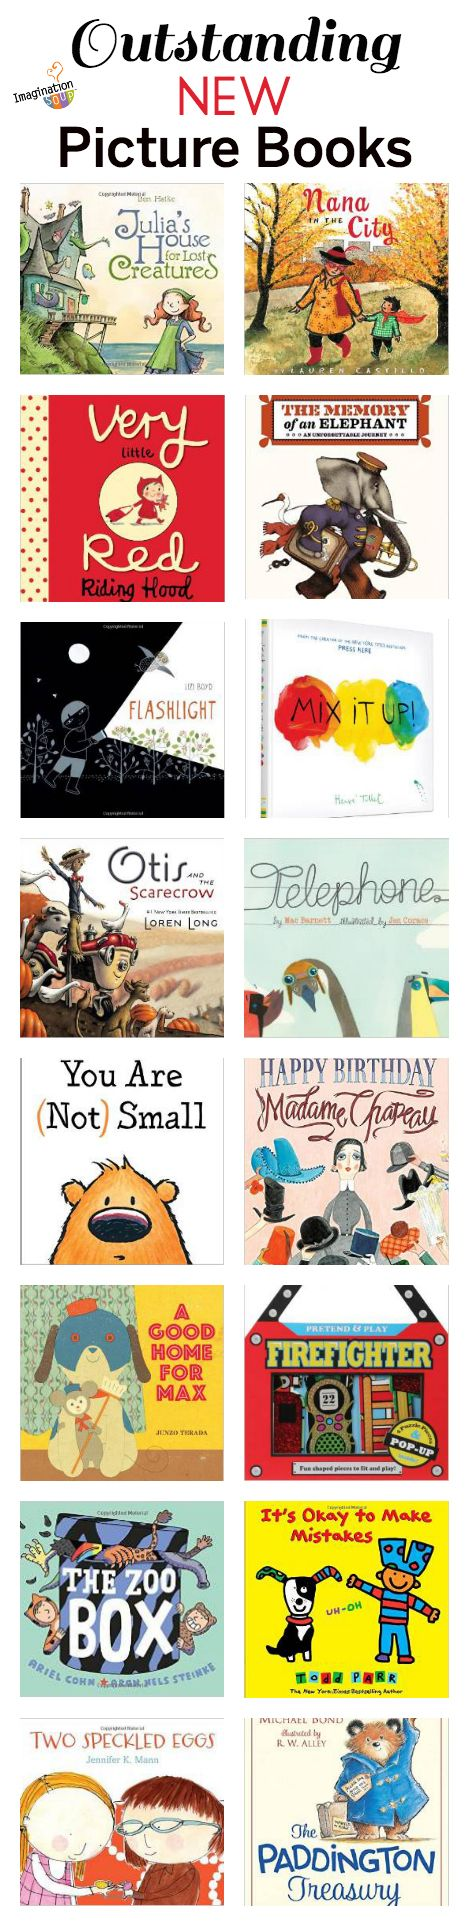 can't wait to read these! Outstanding new picture books, Summer 2014